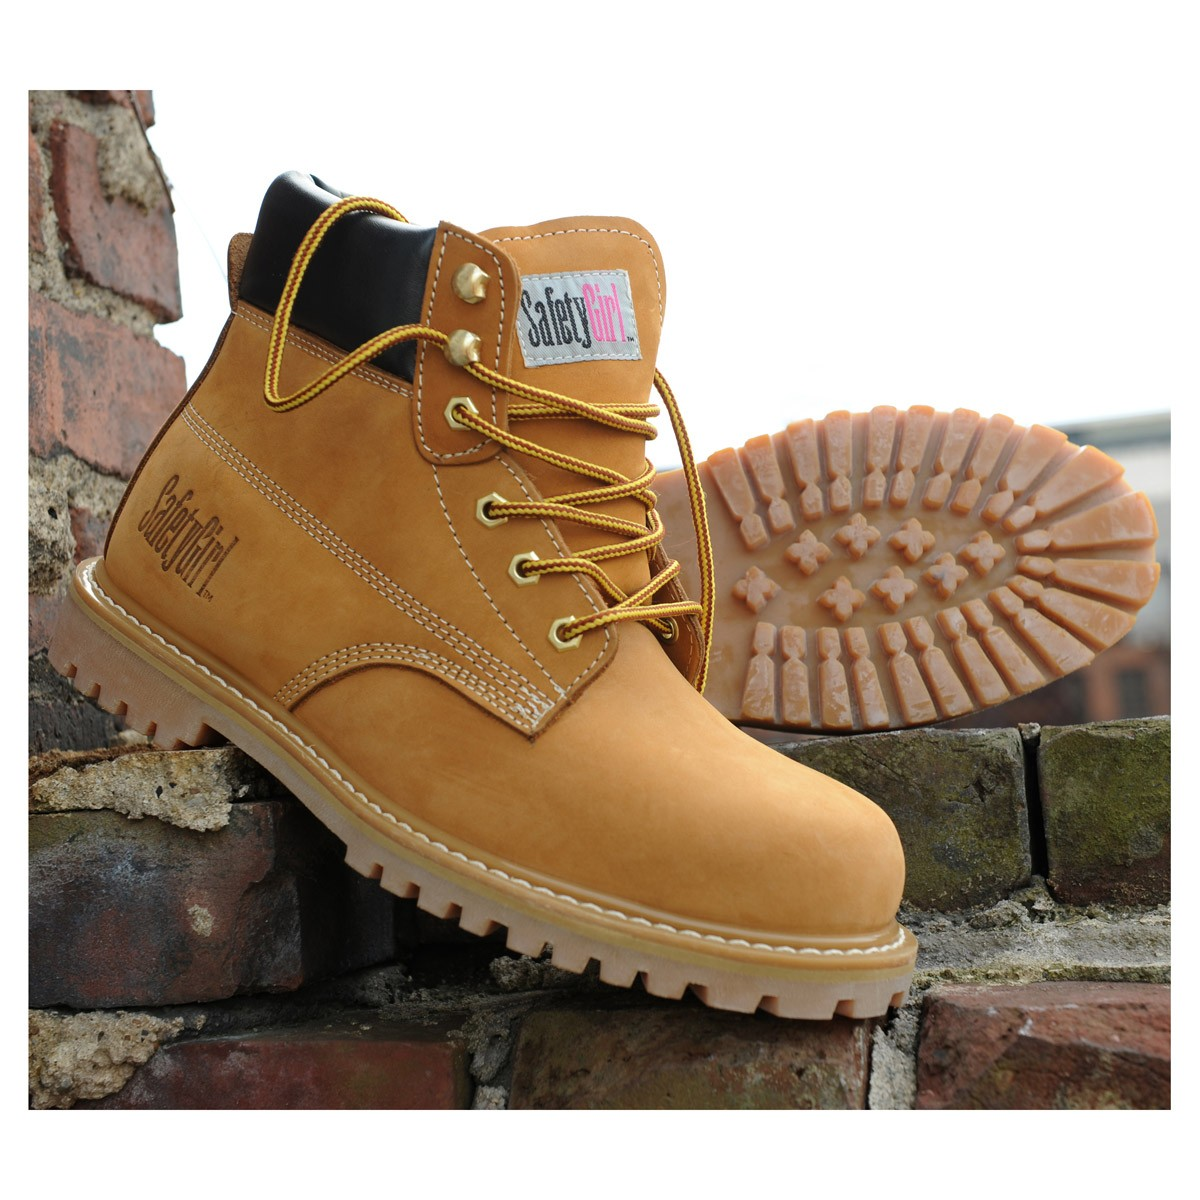 Steel Toe Work Boots For Women 9scGv8pZ